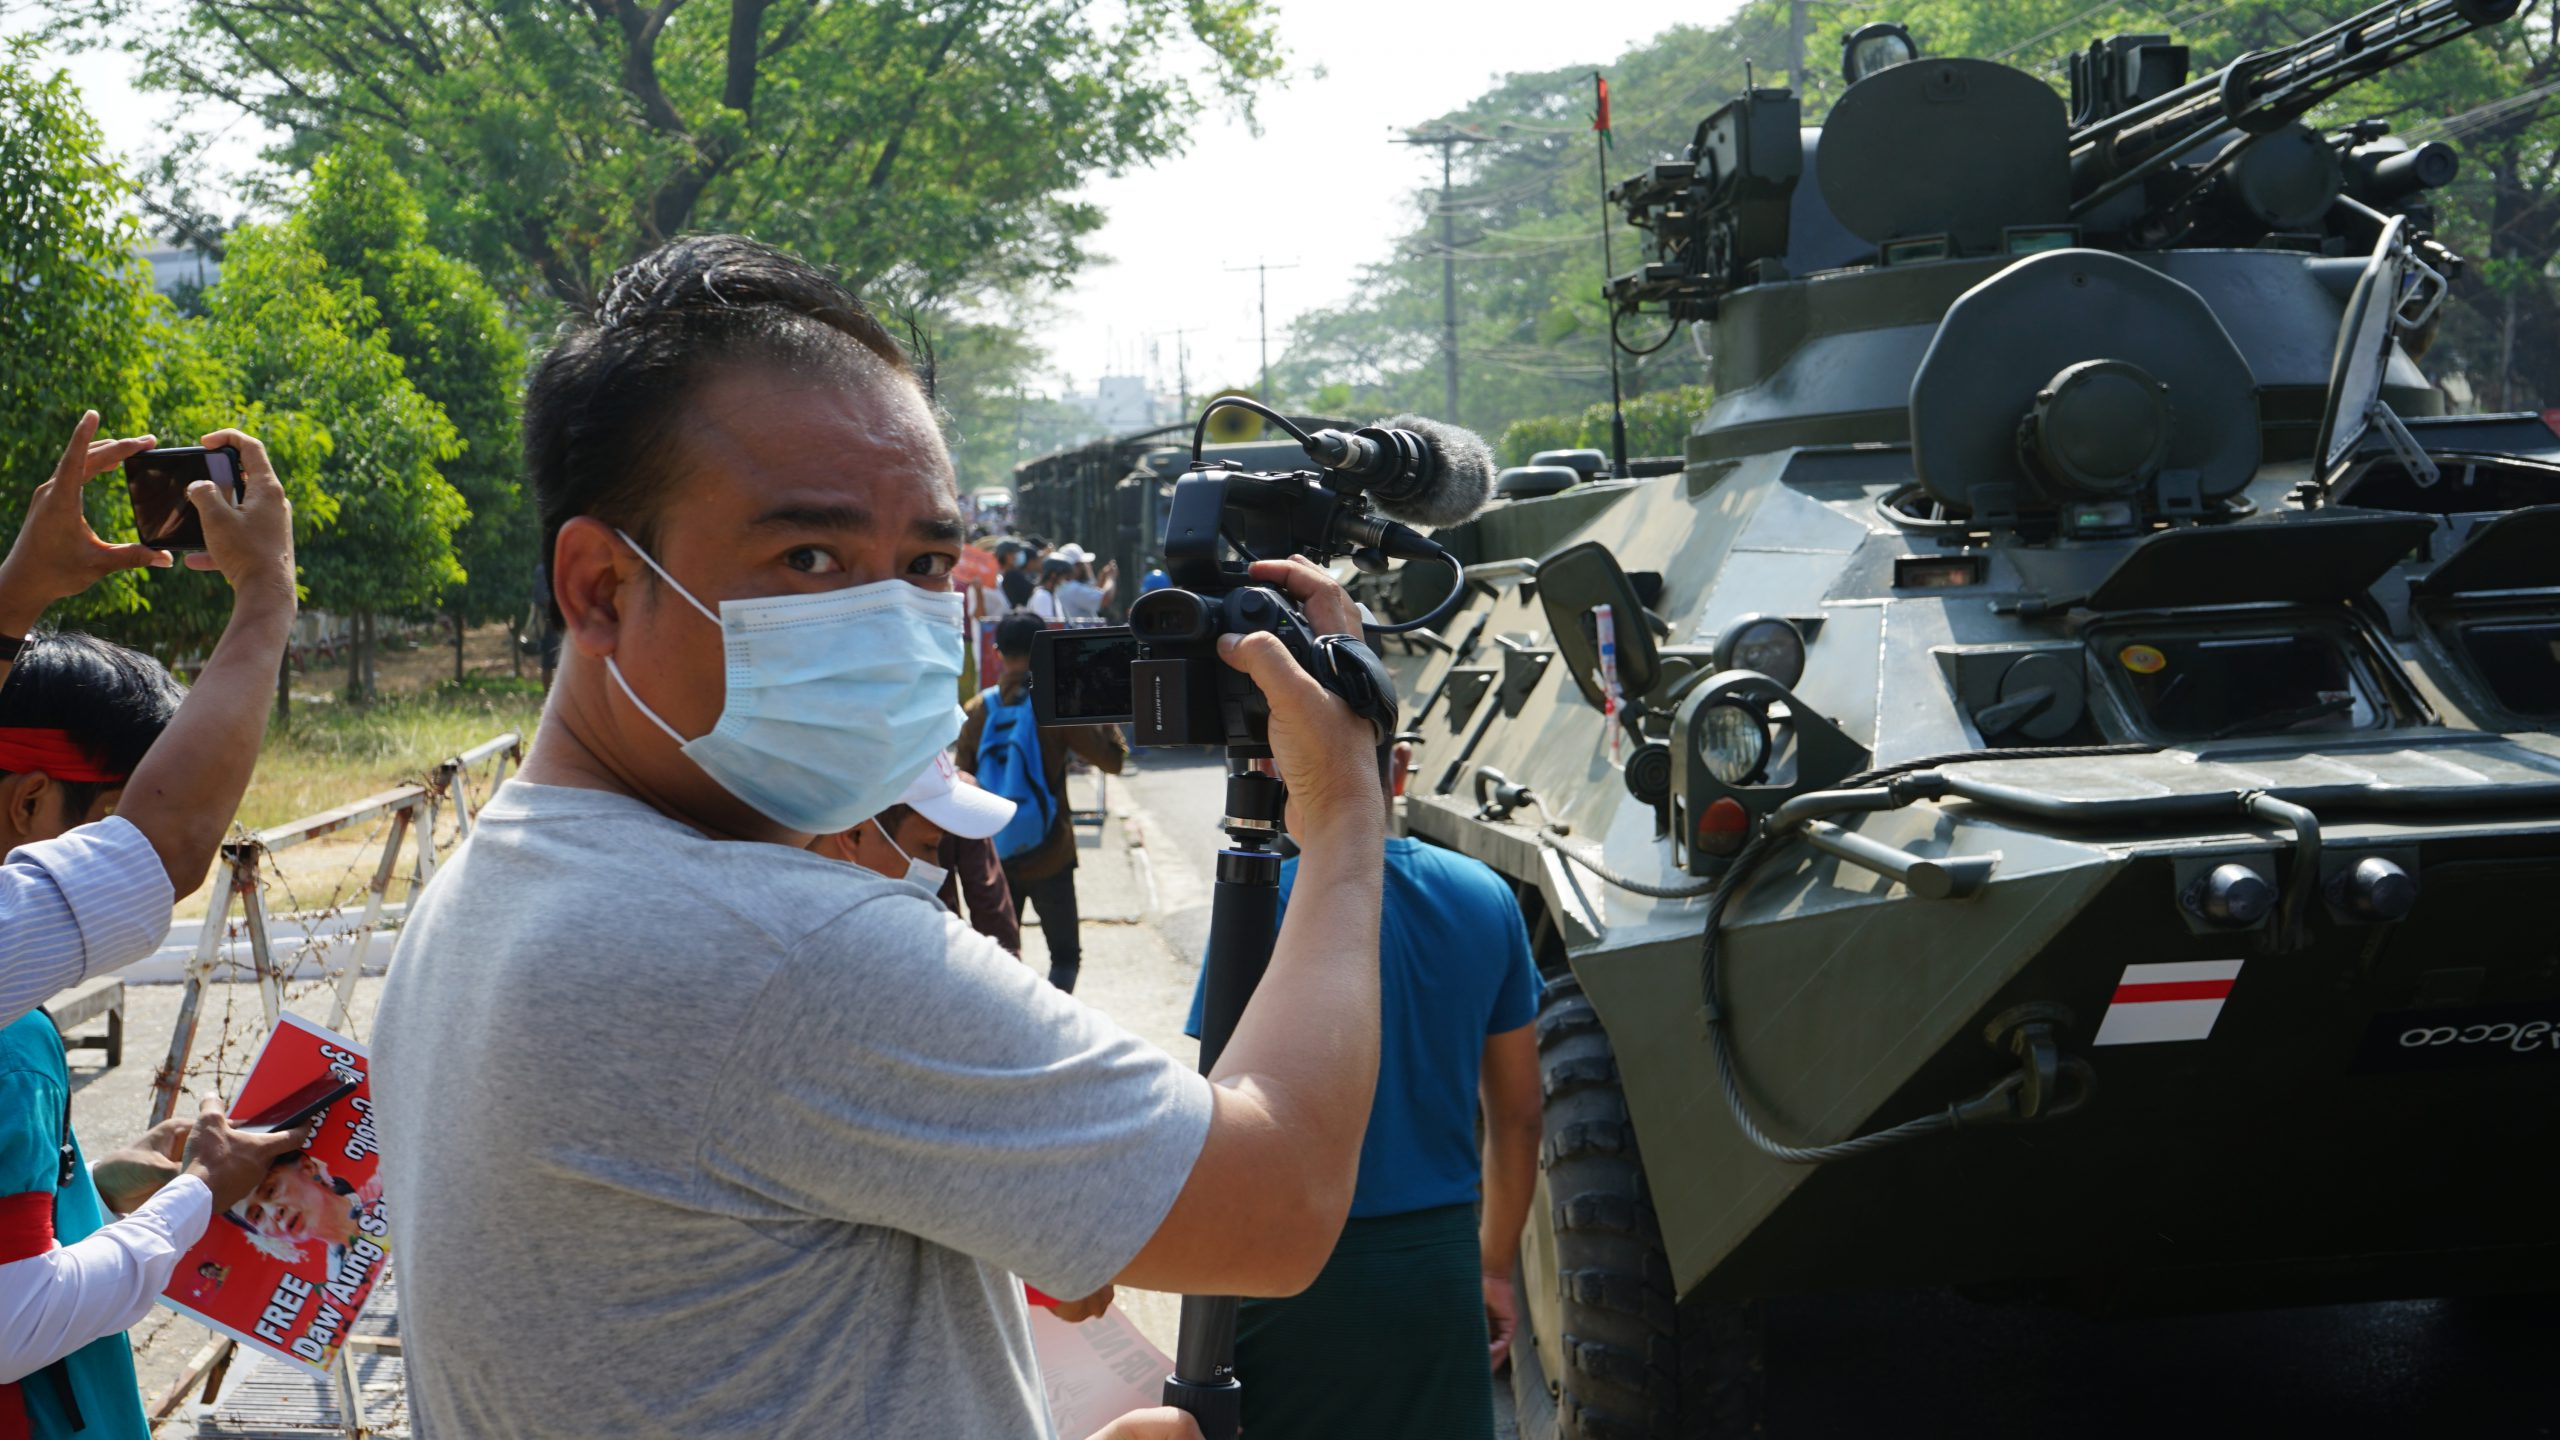 USAGM launches 24/7 satellite TV channel for Burma to counter military censorship